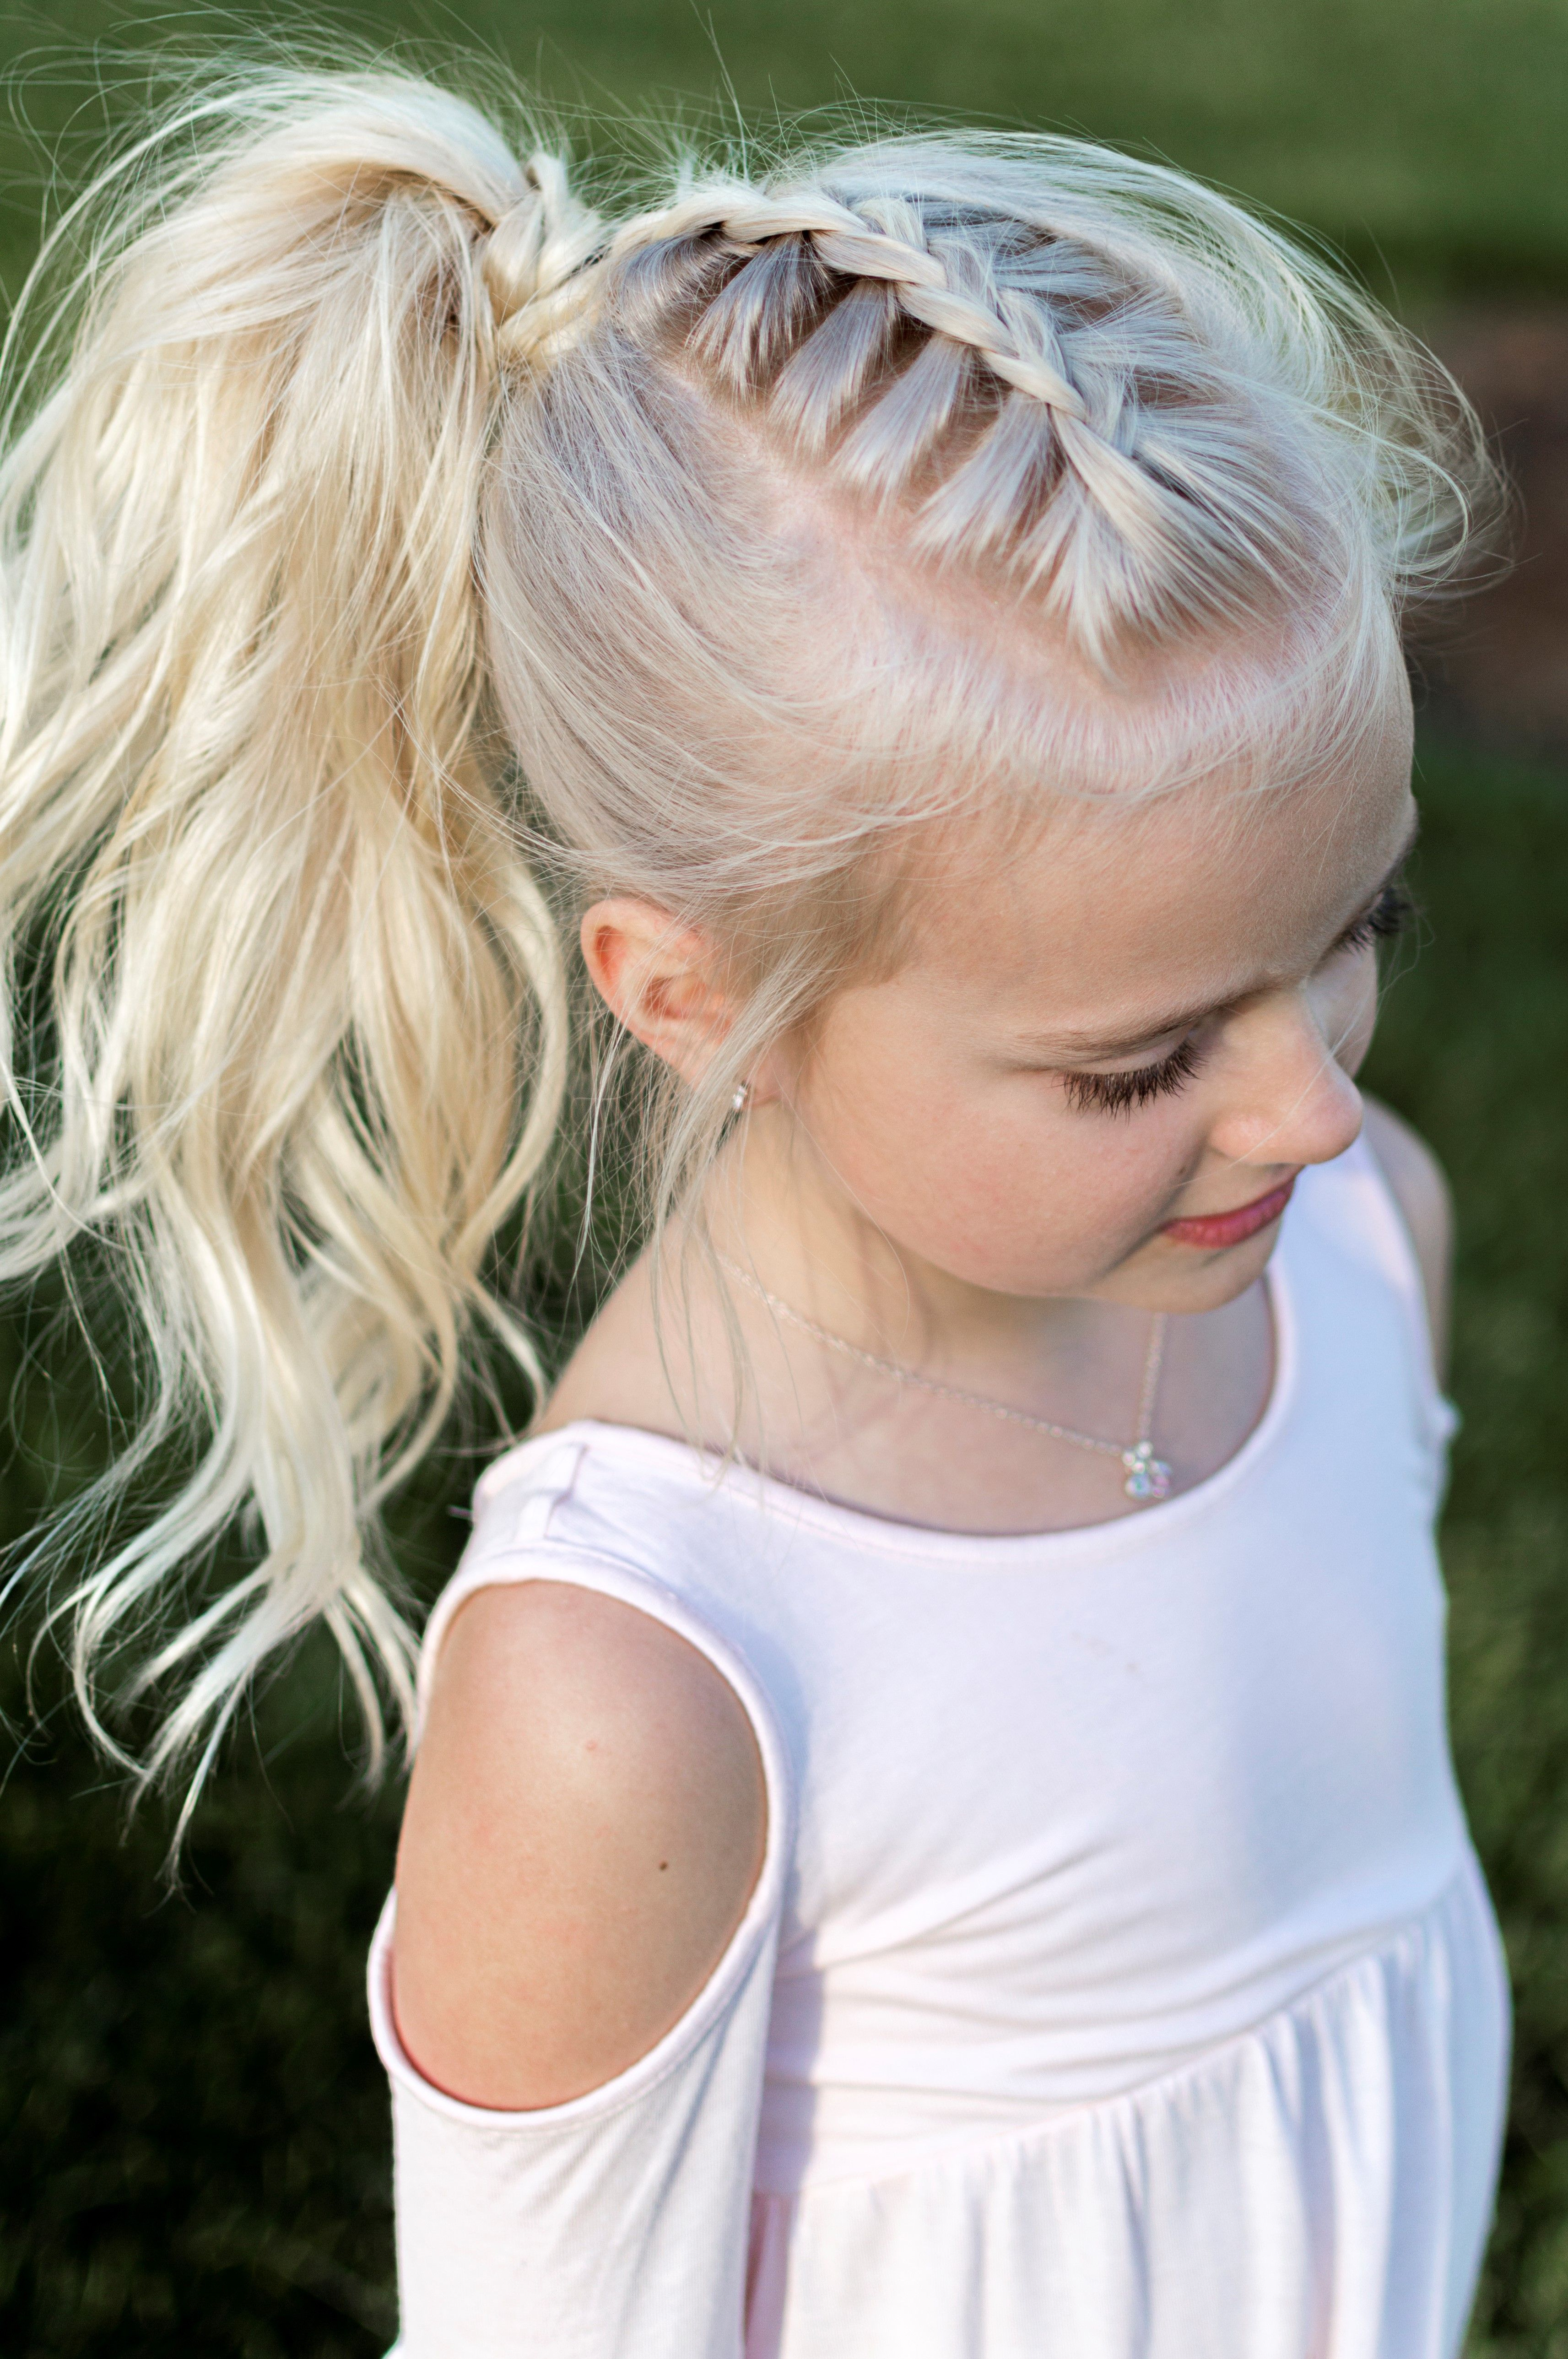 Little girl hairstyle french braid pony tail curls high pony